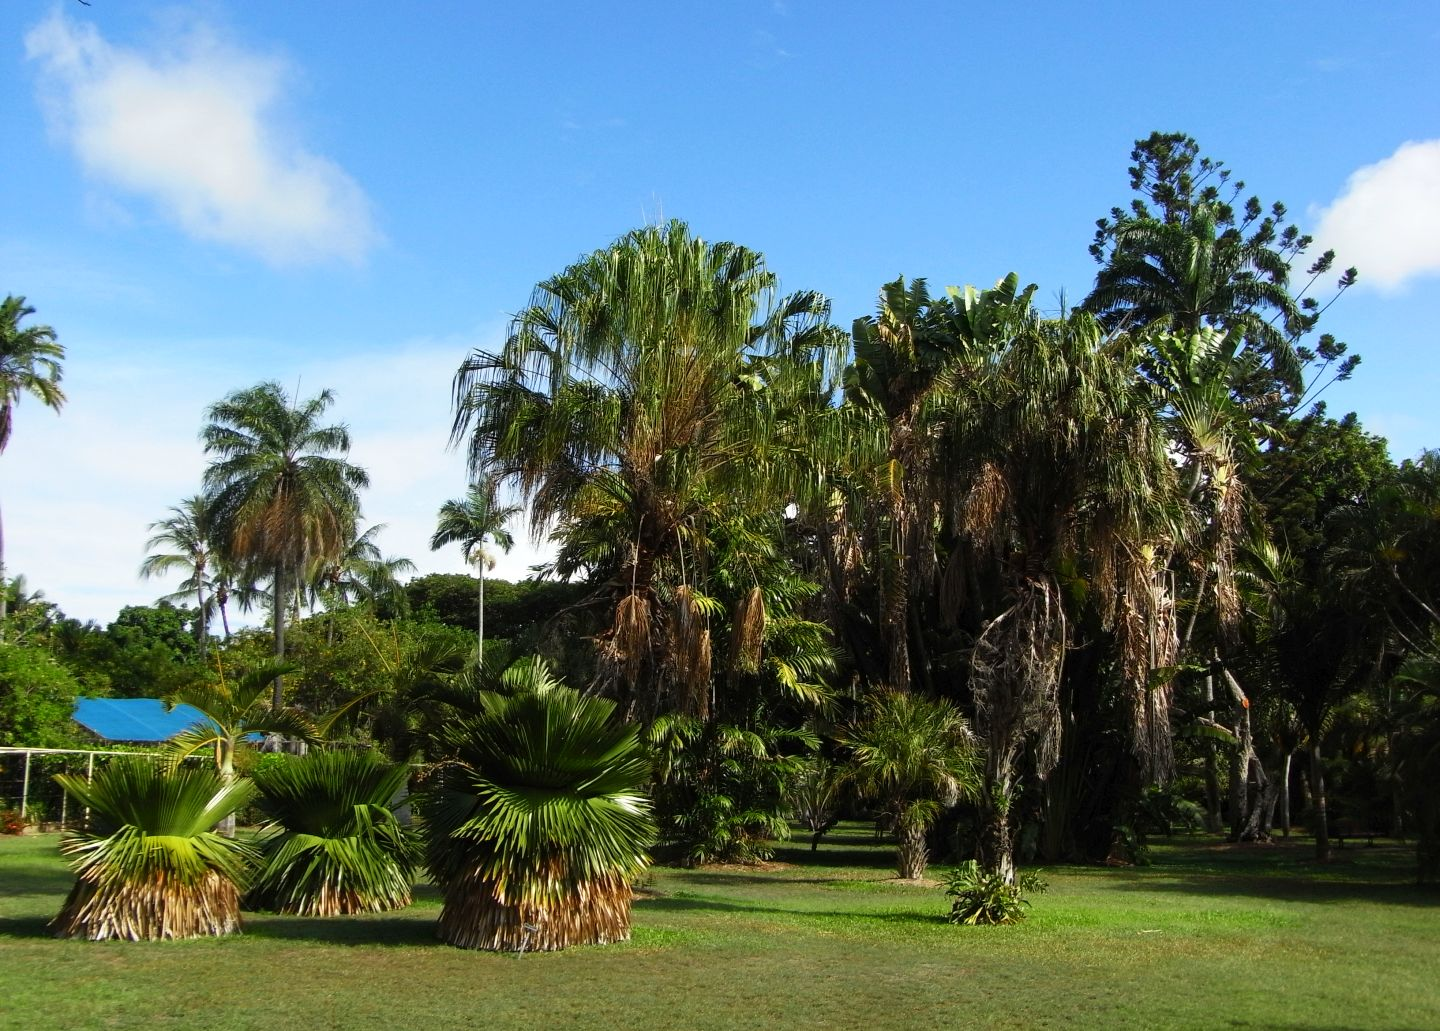 Townsville Parks